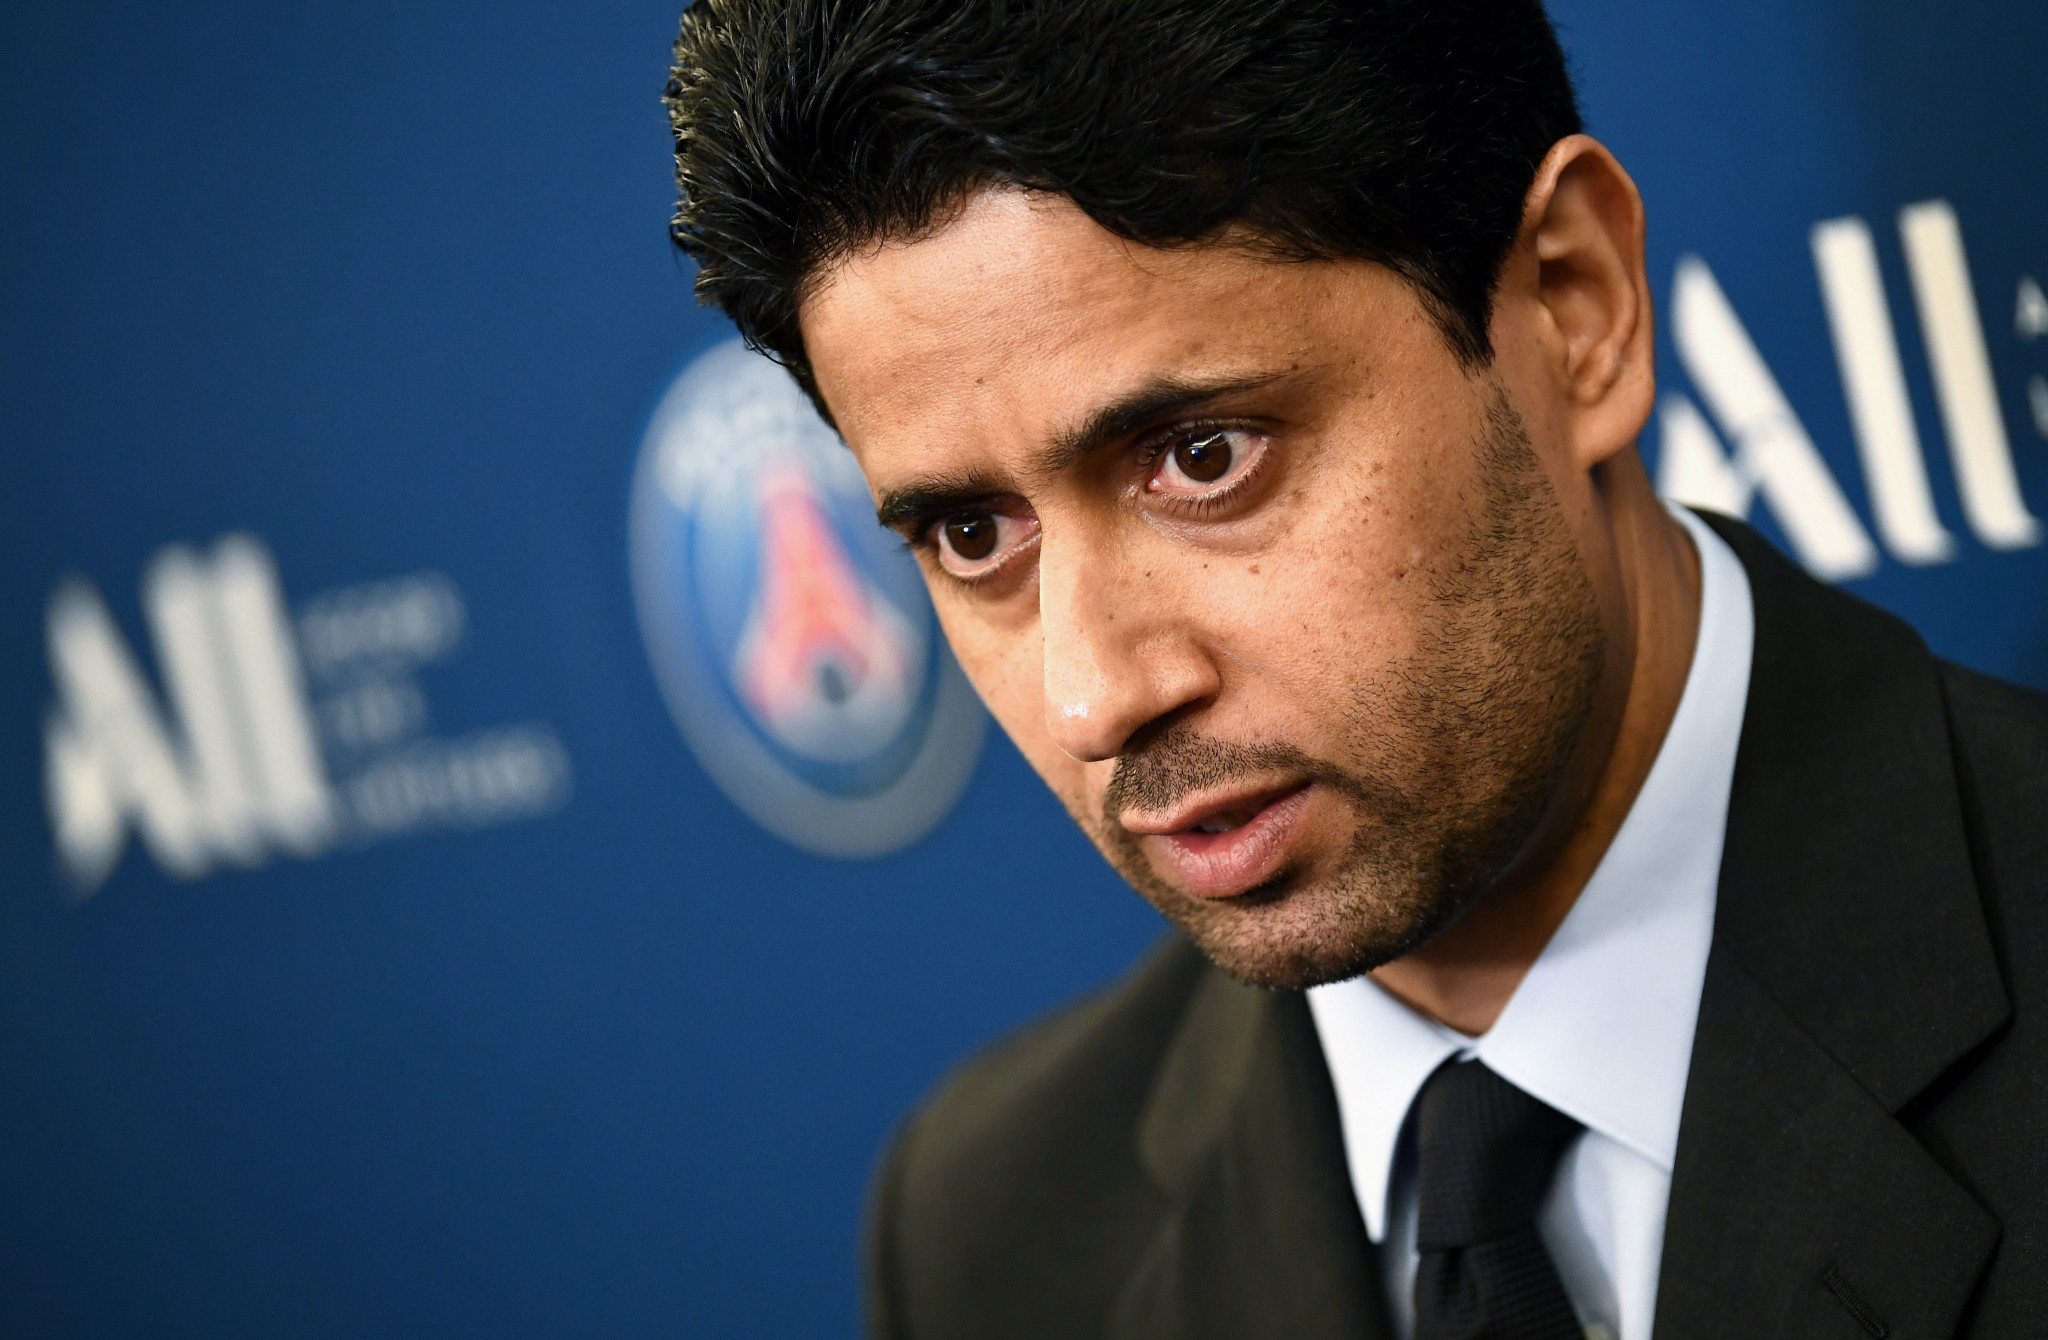 Paris Saint-Germain President Nasser Al-Khelaïfi, one of the most powerful men in sport, has been charged with corruption over the bidding process for the 2019 IAAF World Championships in Doha, according to judicial sources ©Getty Images